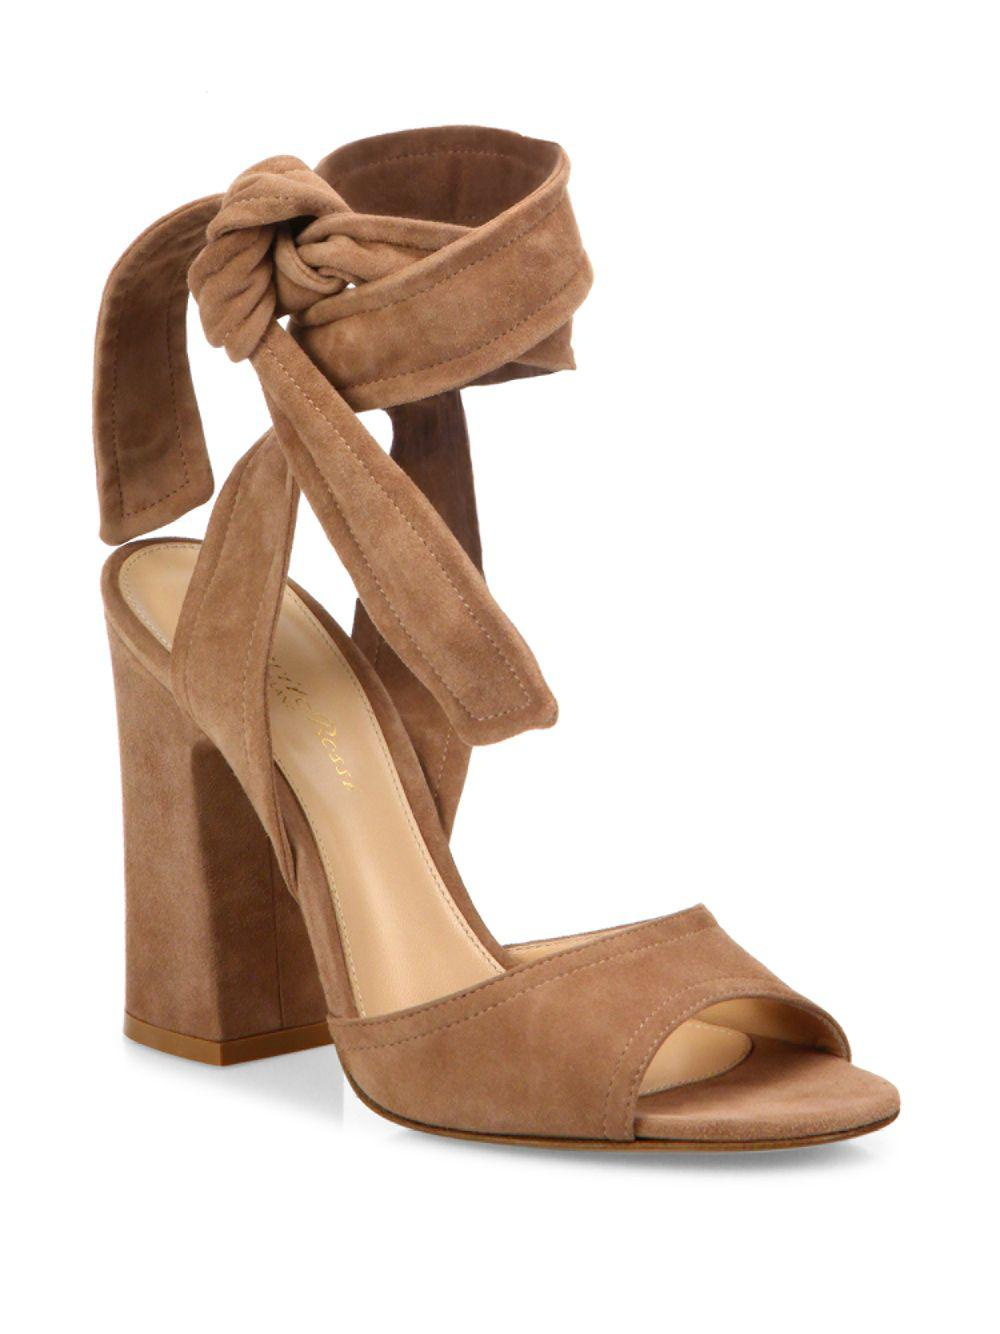 a8c2ae99b3de3 Lyst - Gianvito Rossi Nika Suede Ankle-wrap Block Heel Sandals in Brown